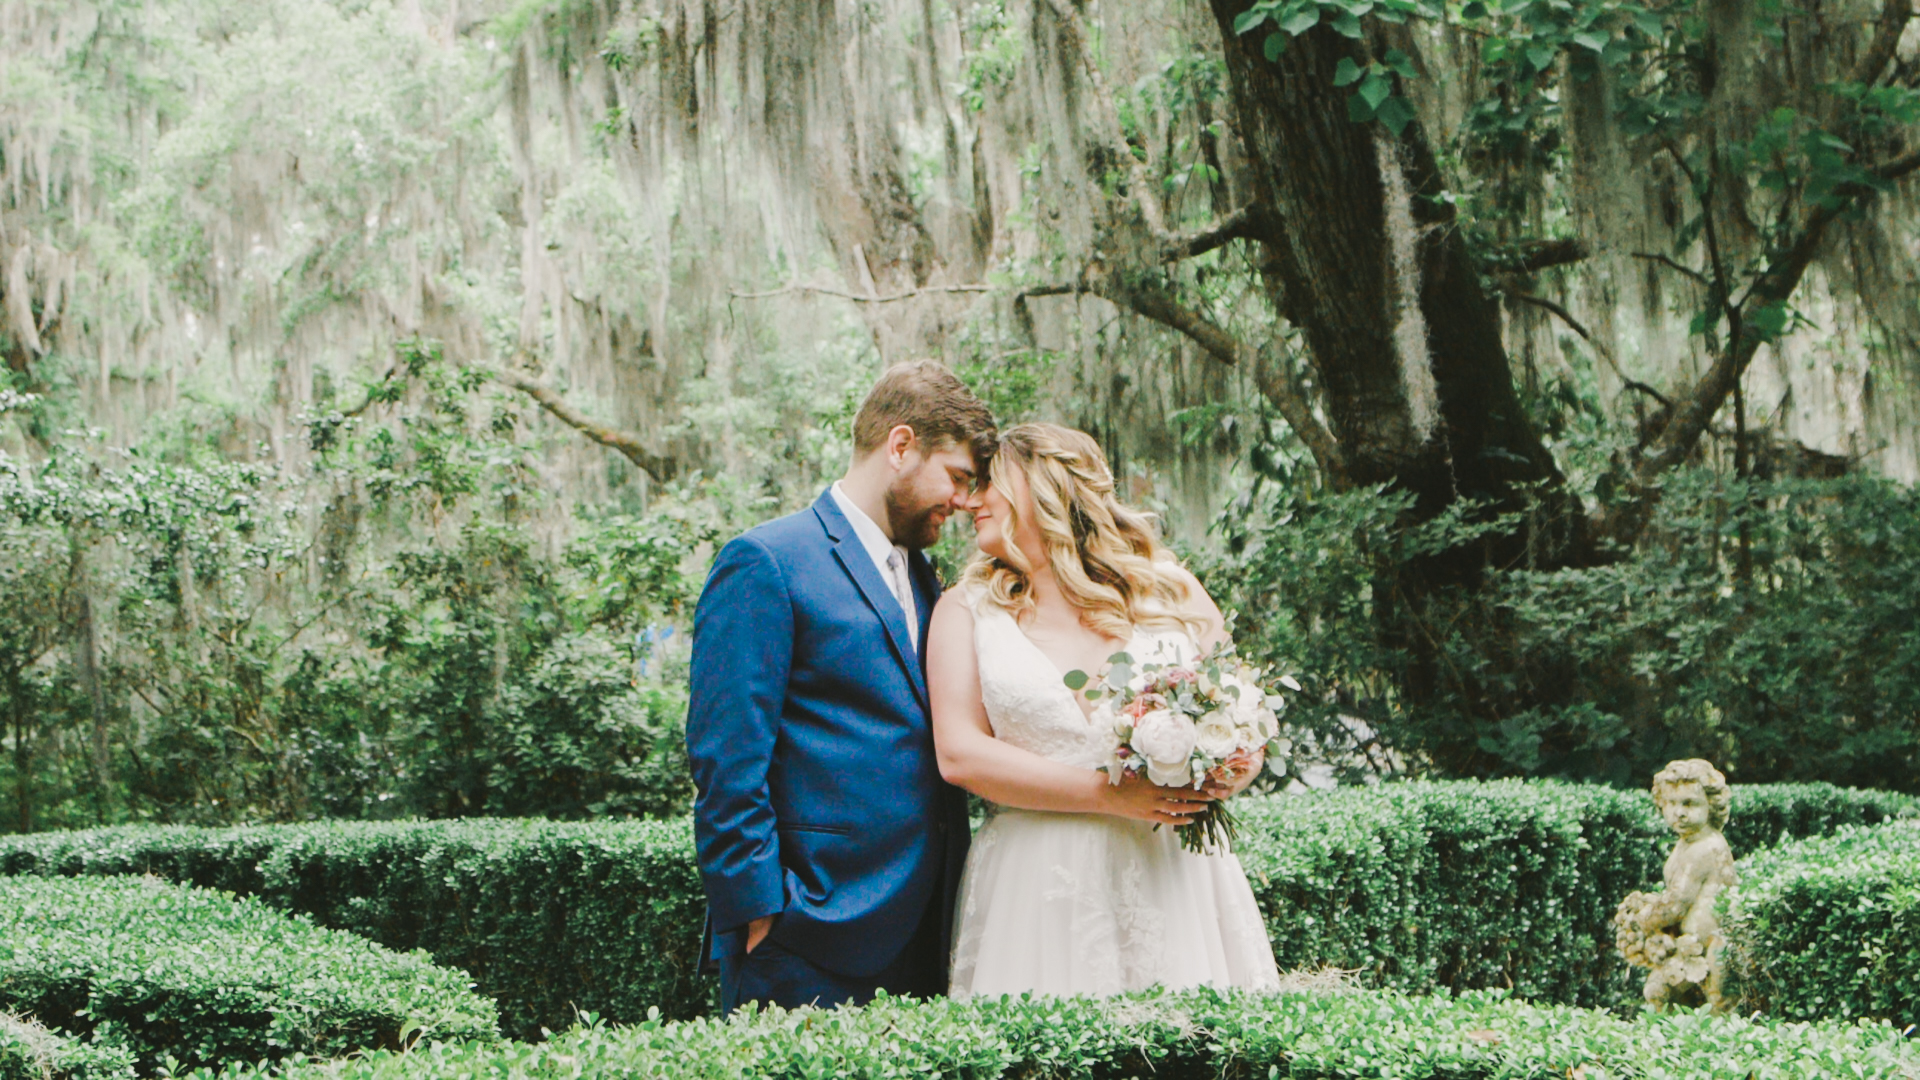 Paige + Troy | Charleston, South Carolina | Magnolia Plantation and Gardens